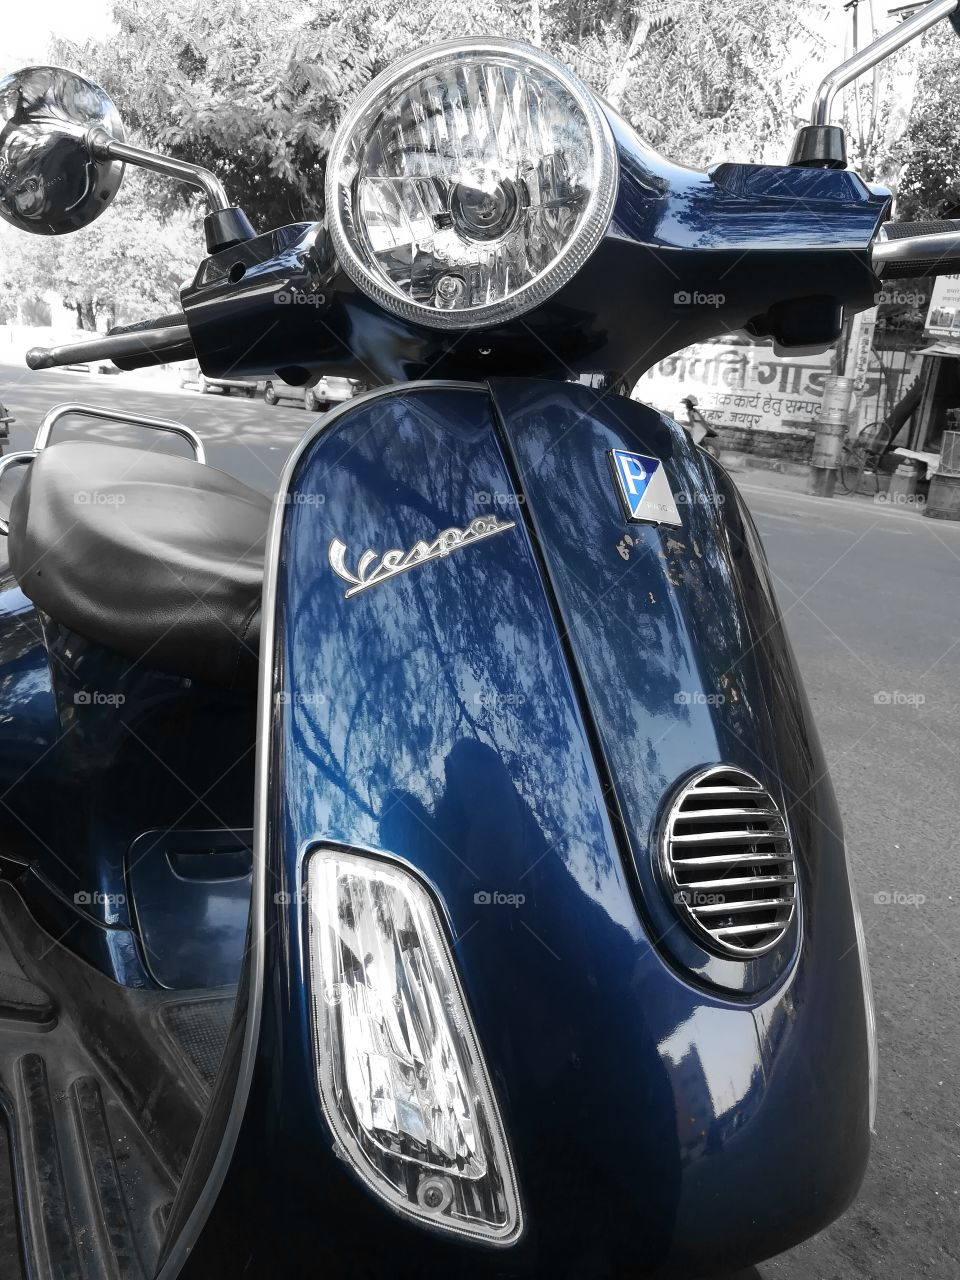 MOBILE PHOTOGRAPHY, Vespa Scooter, Street Photography, Clicked By Honor 6x Pro mode, Colour Splash, On Road Side, Chrome Finish.